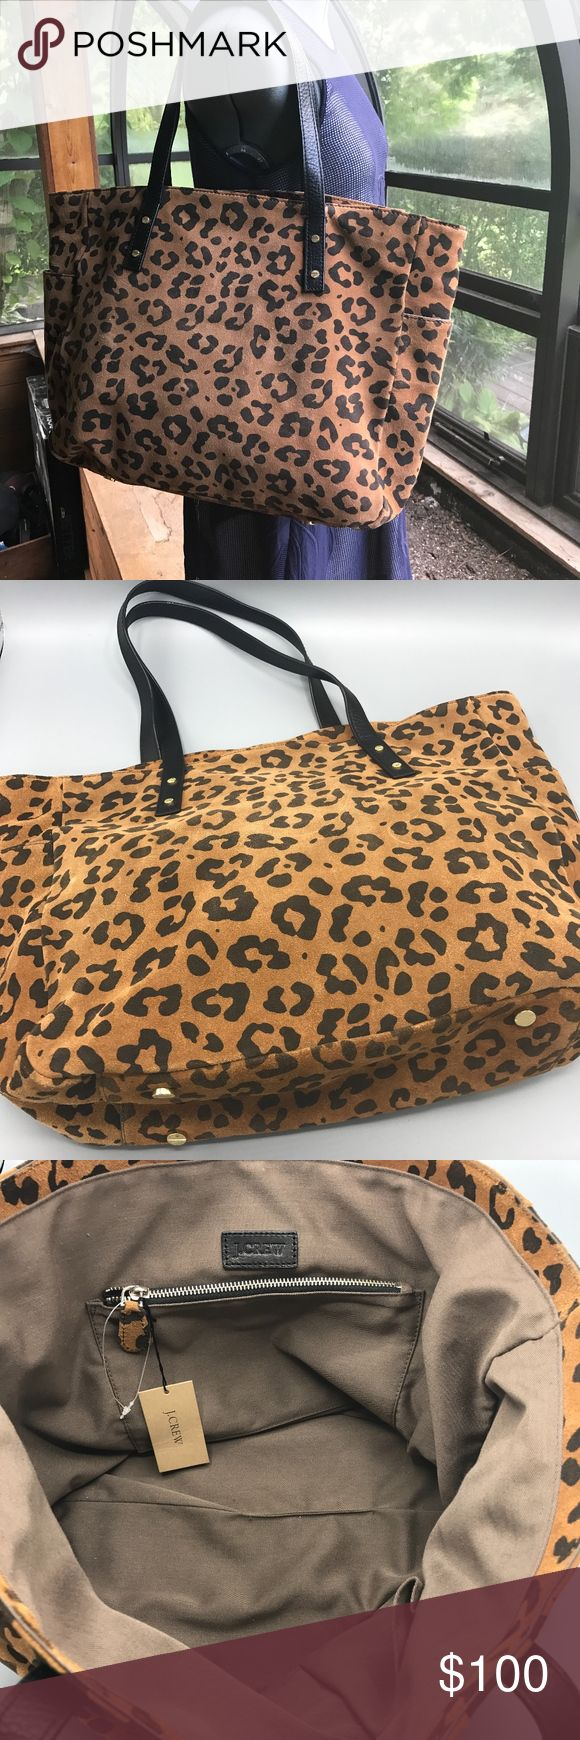 J CREW NEWSSTAND TOTE IN LEOPARD SUEDE - SO SOFT! Super stylish NEW WITH TAG - J Crew Newsstand suede tote in leopard print. Black leather handles. Exterior pockets on both ends with magnetic closure (great size for cell phone). Three interior pockets - one large zippered, one cell phone and one other medium size pocket. Great overnight travel bag. J. Crew Bags Totes